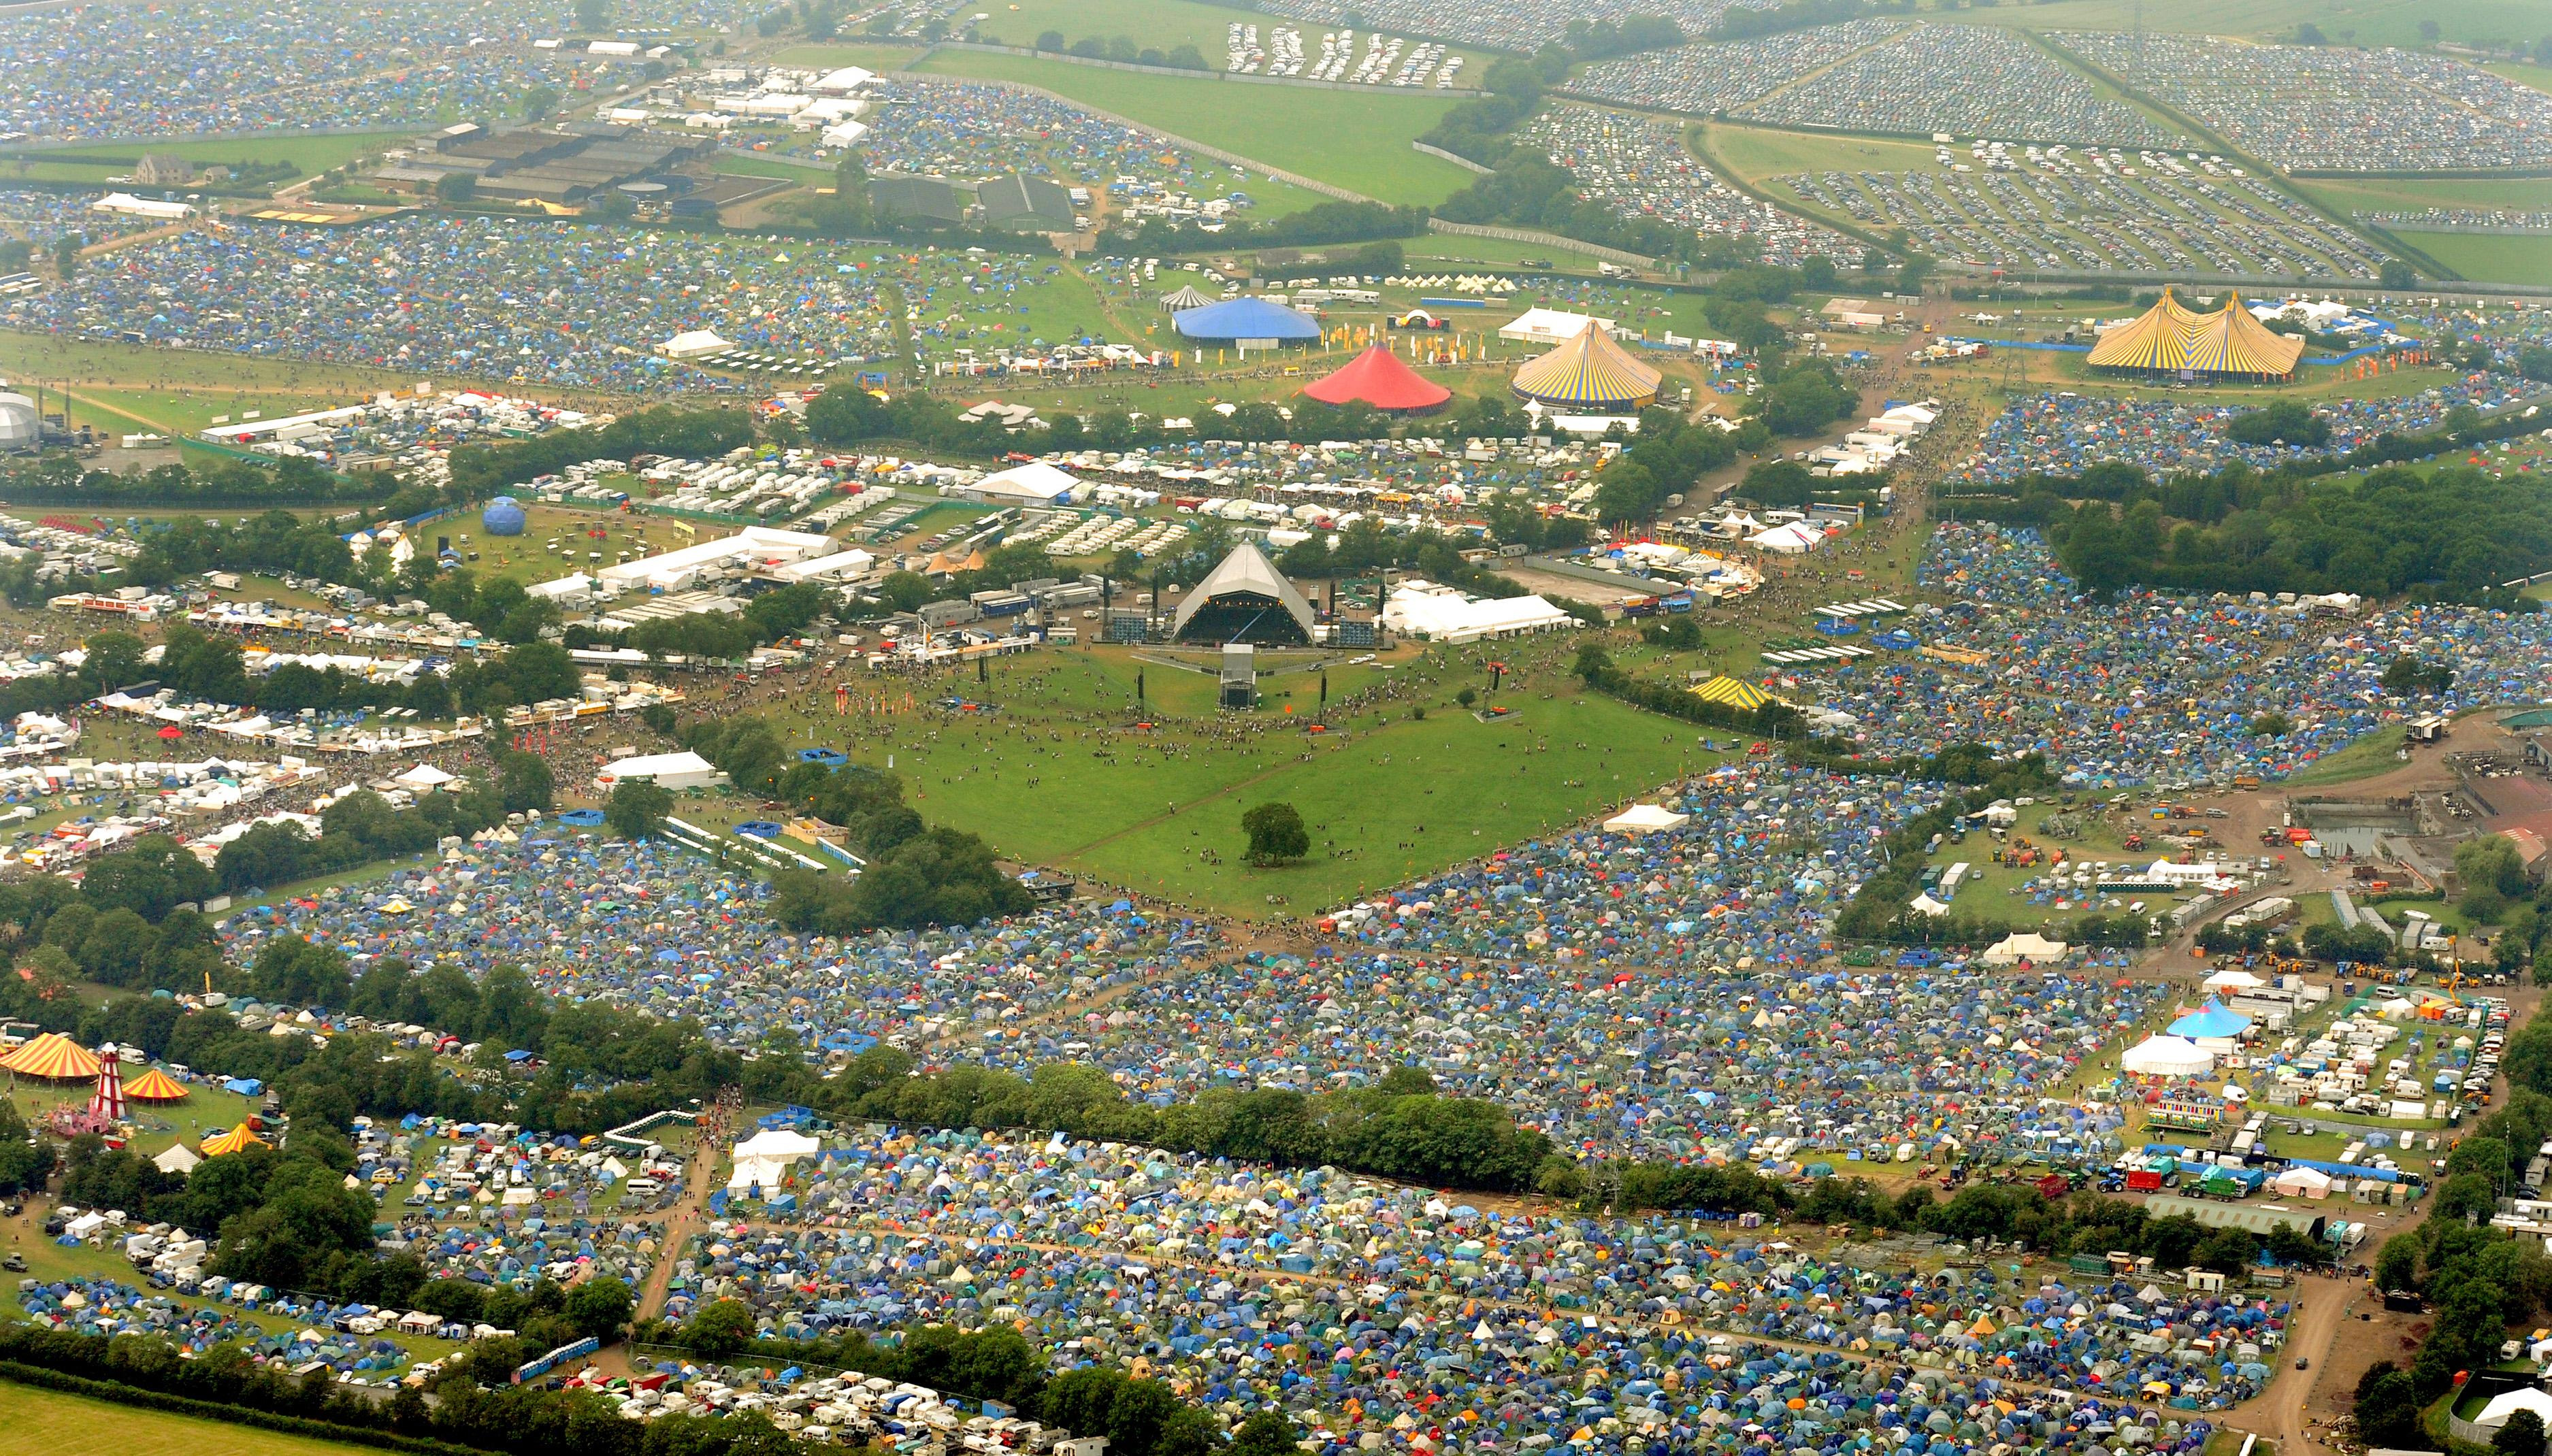 Glastonbury Festival Pyramid Stage Video 2009